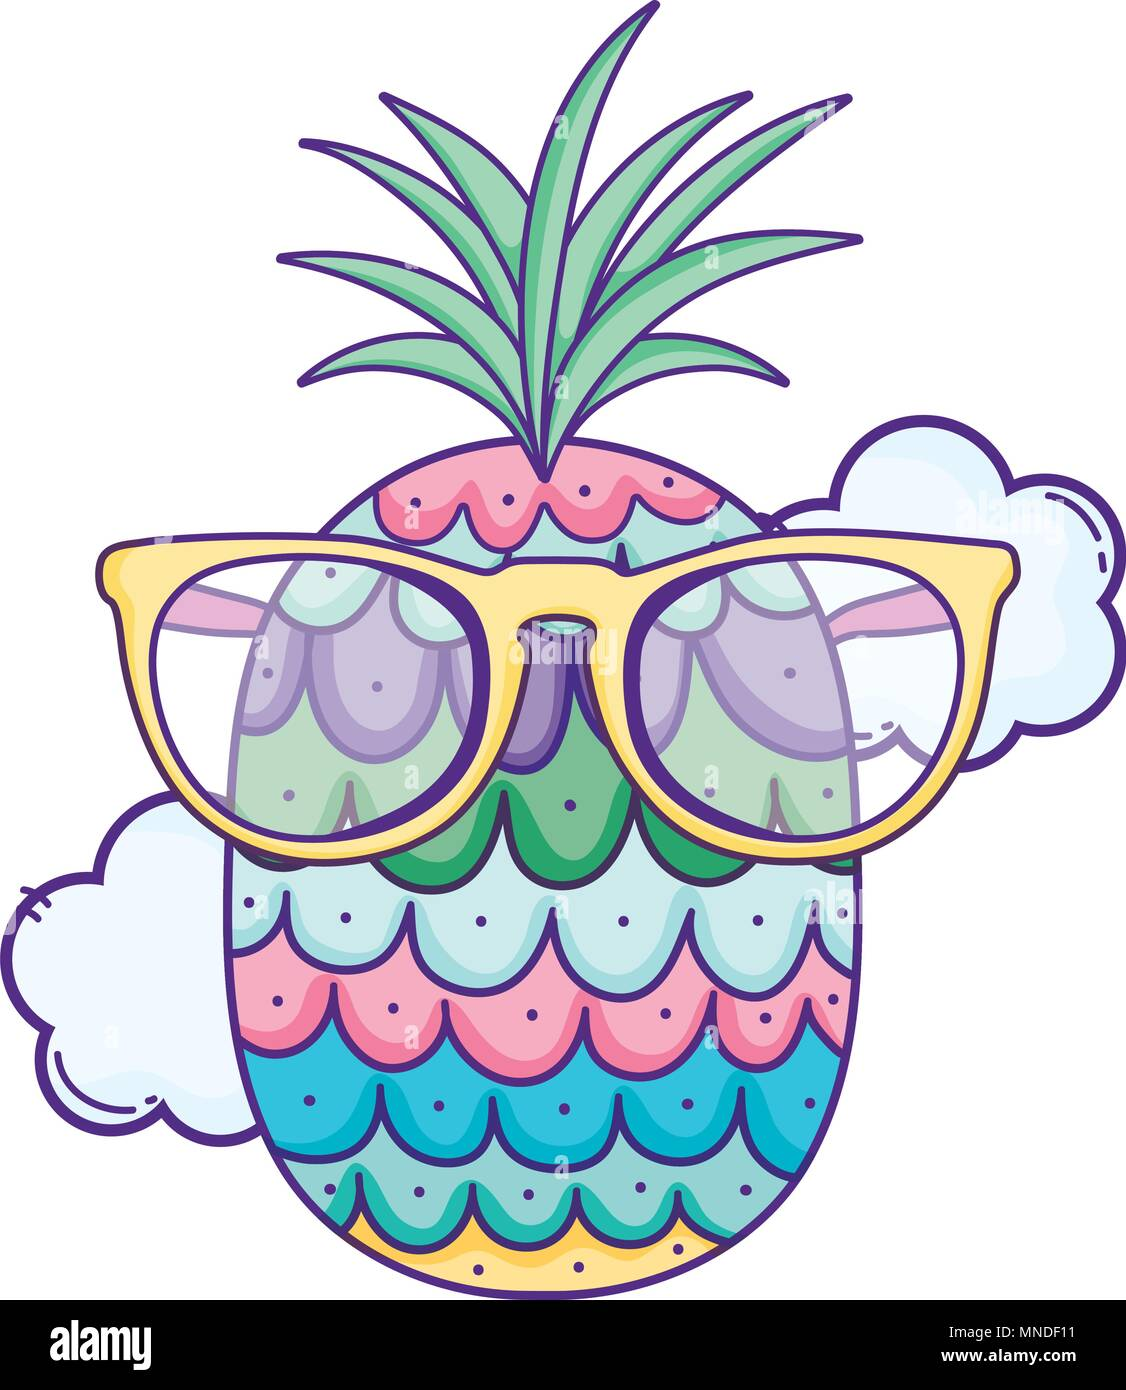 Kawaii Pineapple Fruit With Fashion Glasses And Clouds Stock